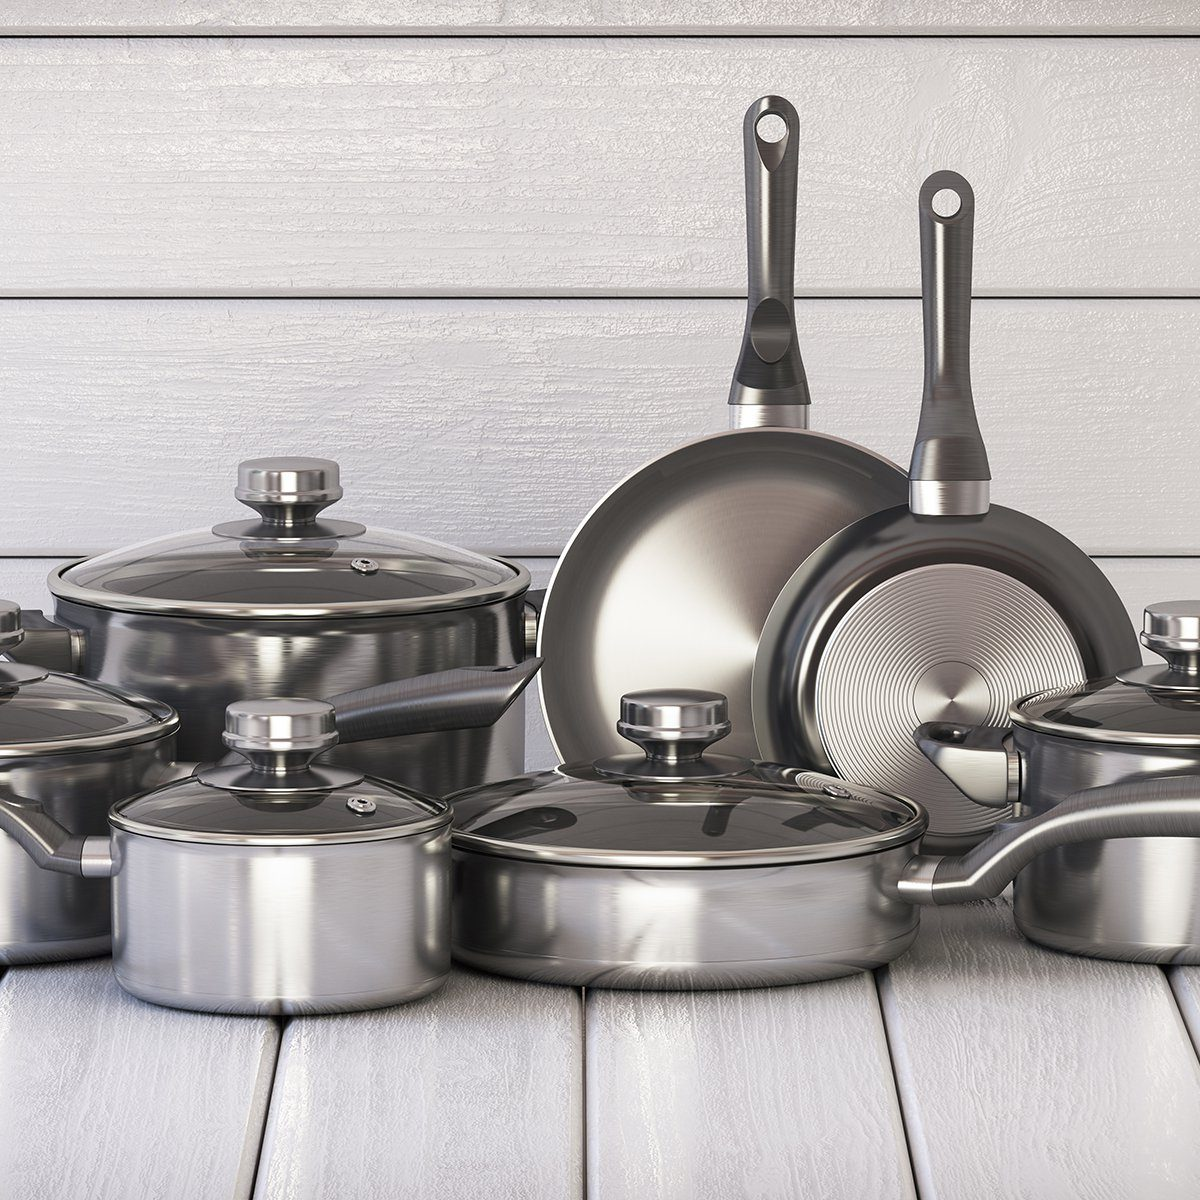 Set of stainless pots and pan with glass lids on the white wooden background